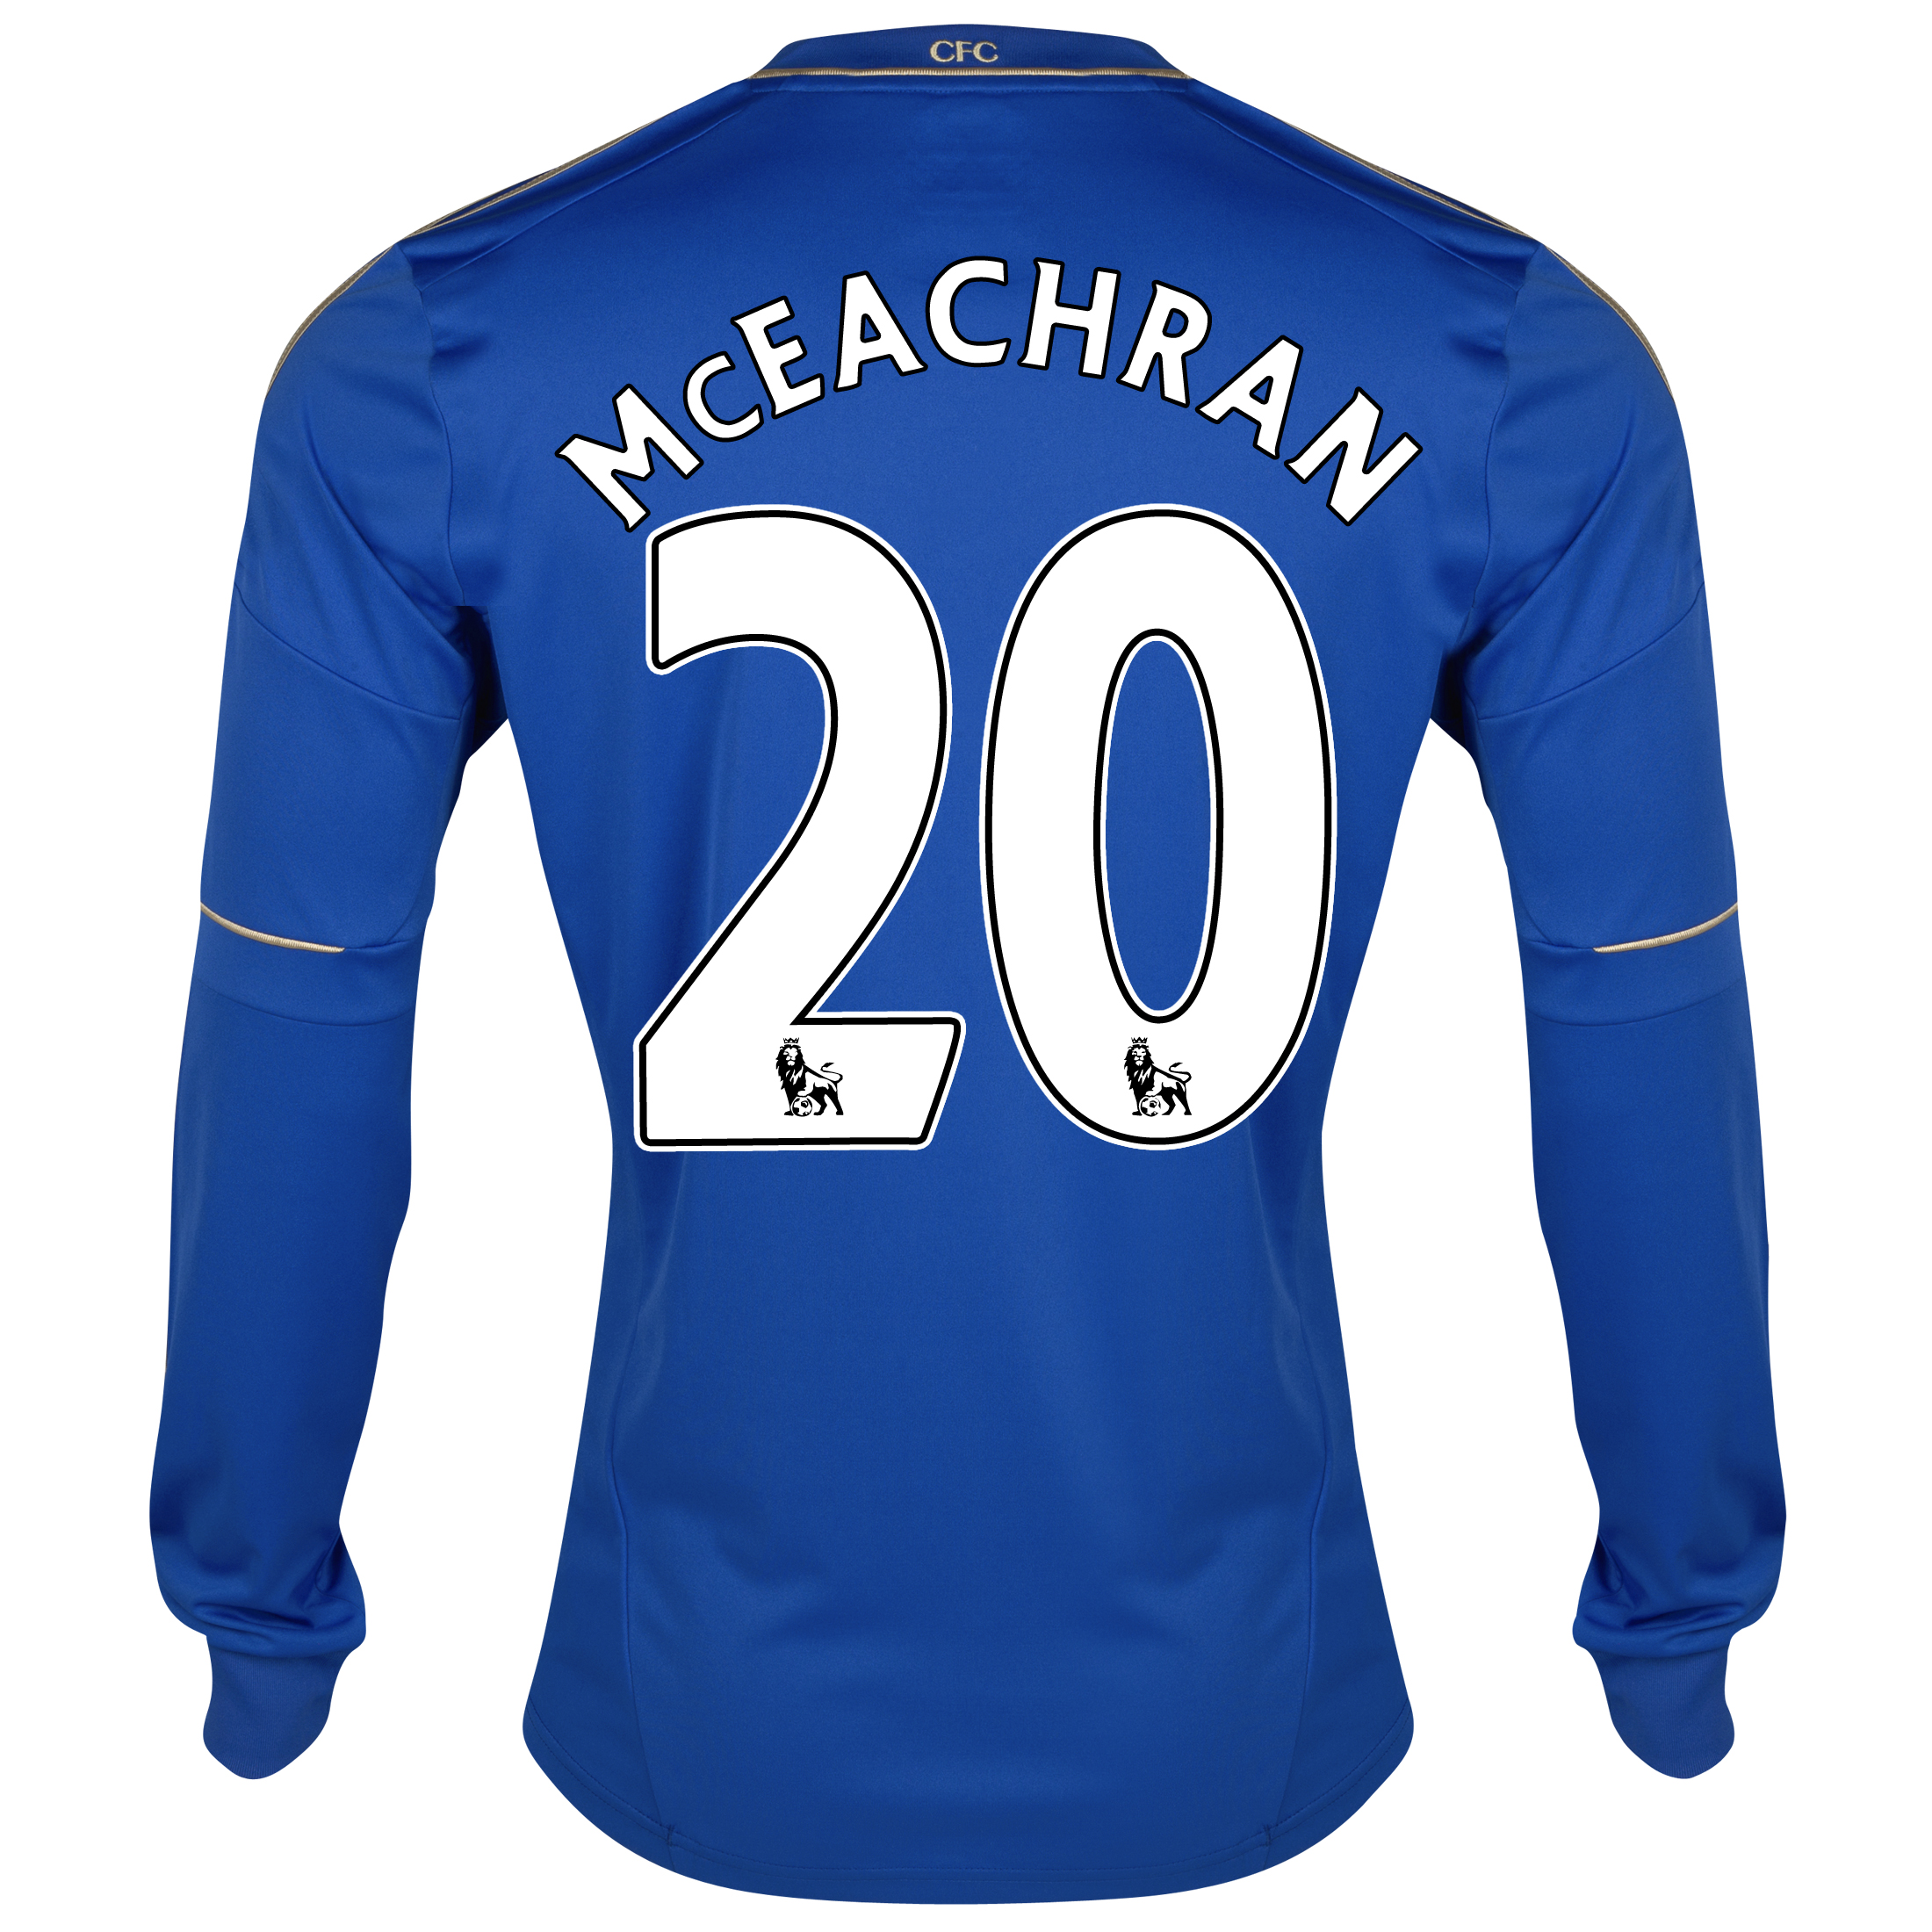 Chelsea Home Shirt 2012/13 - Long Sleeved - Youths with McEachran 20 printing